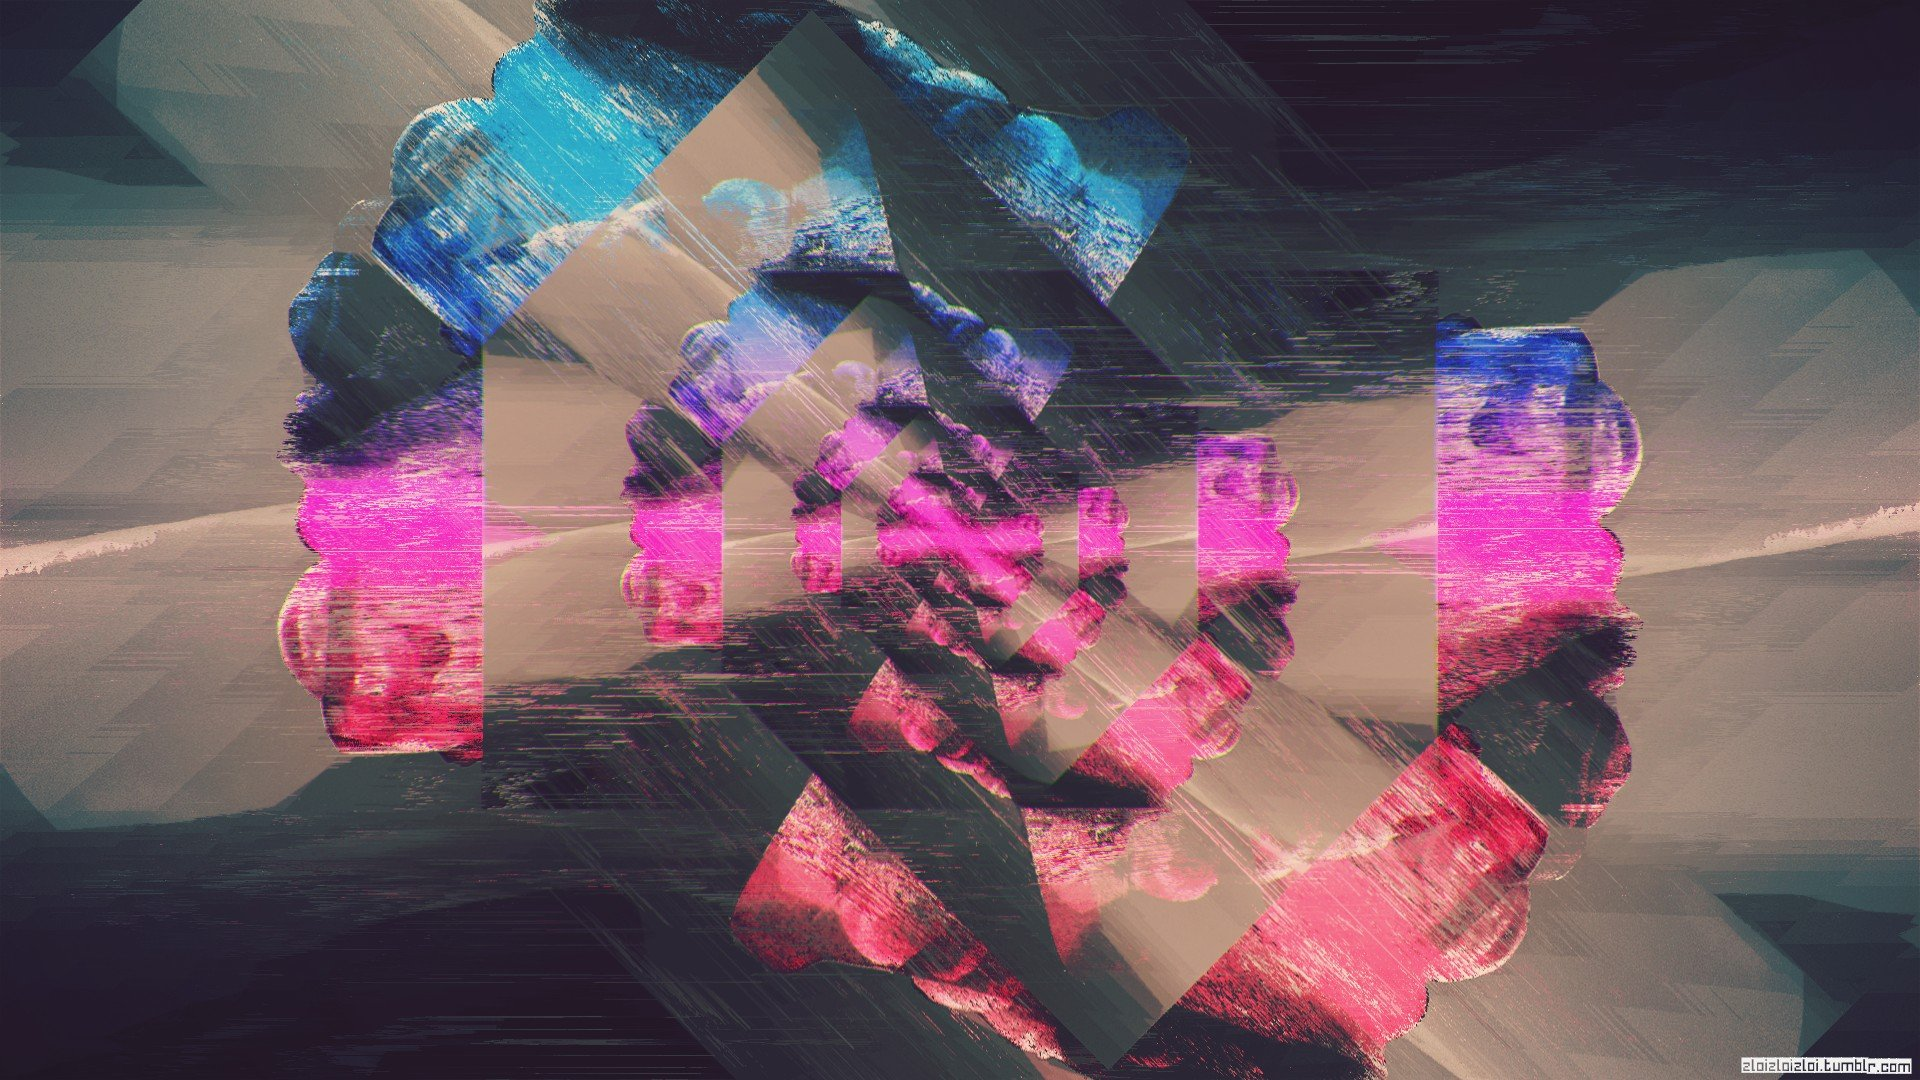 Glitch Art Wallpapers Hd Desktop And Mobile Backgrounds: Glitch Art, Abstract HD Wallpapers / Desktop And Mobile